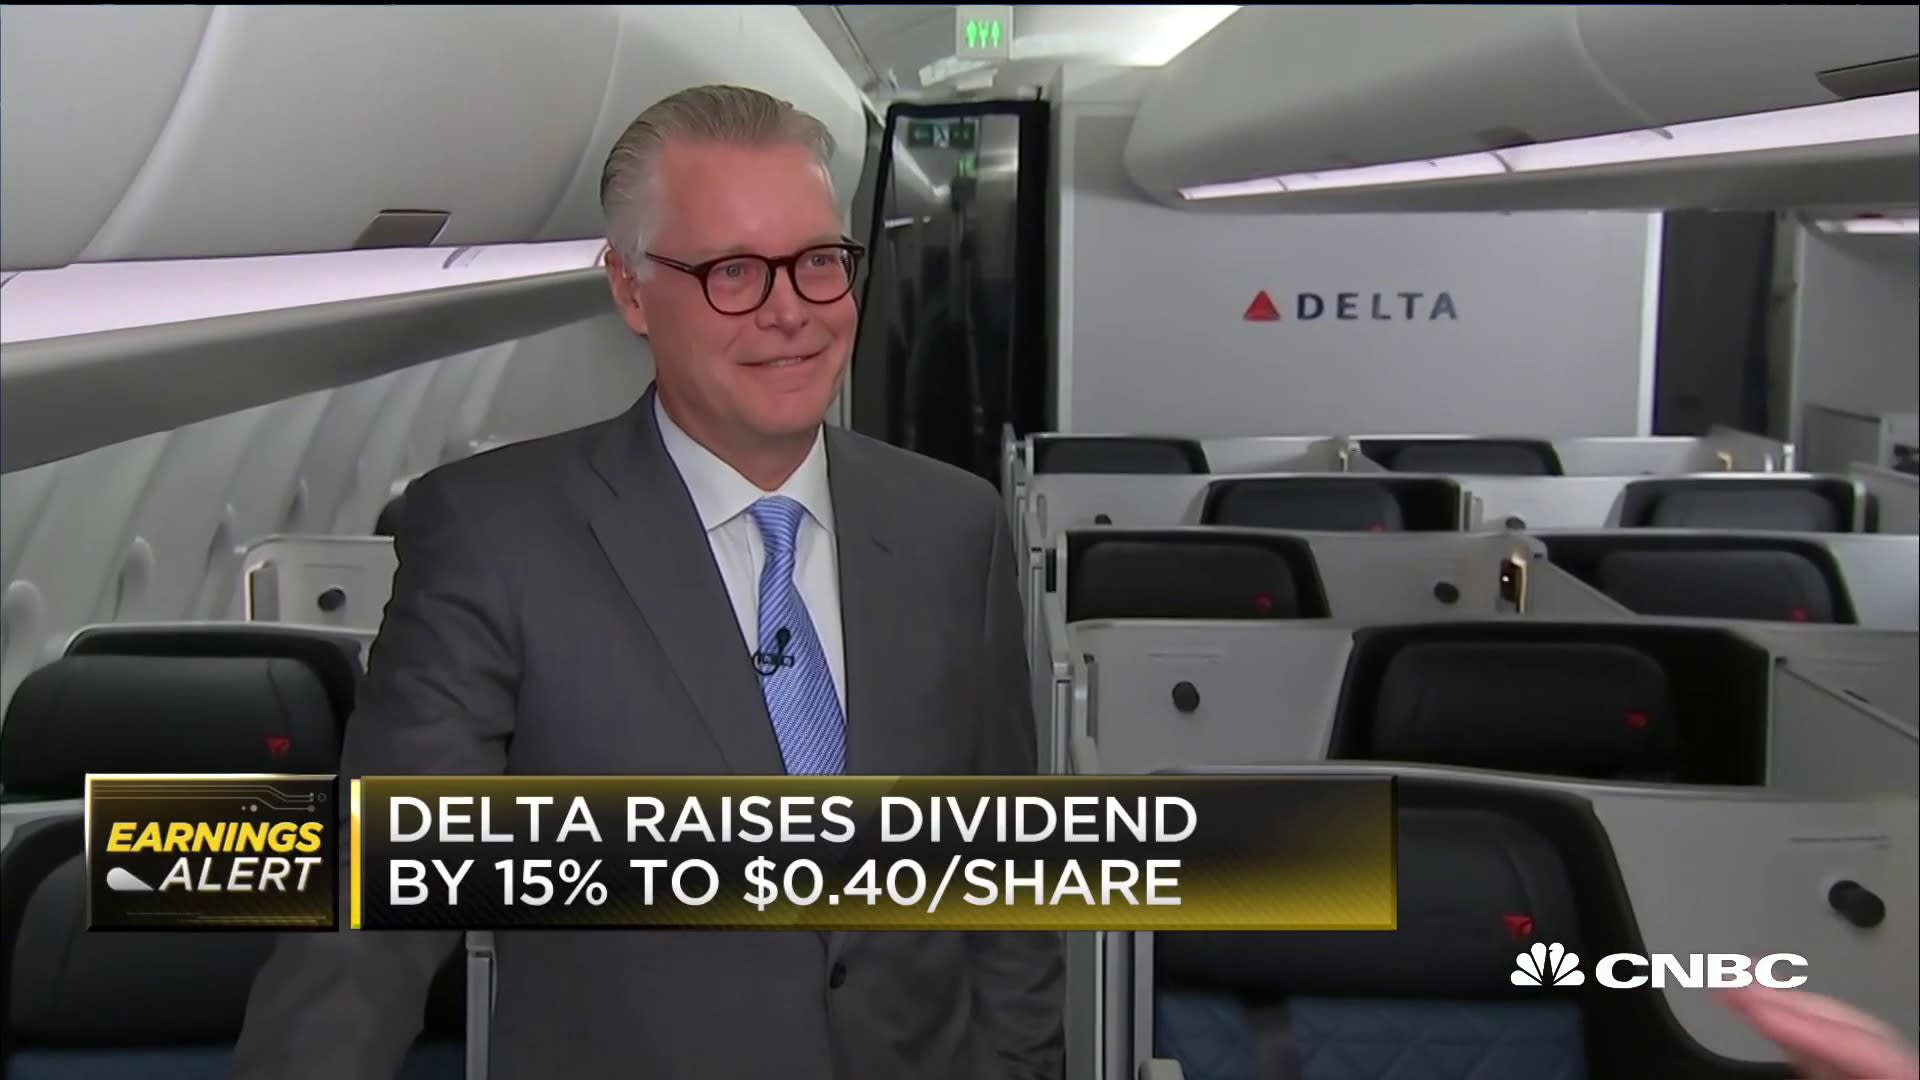 Delta raises 2019 profit outlook on strong demand as rivals grapple with Boeing 737 Max grounding